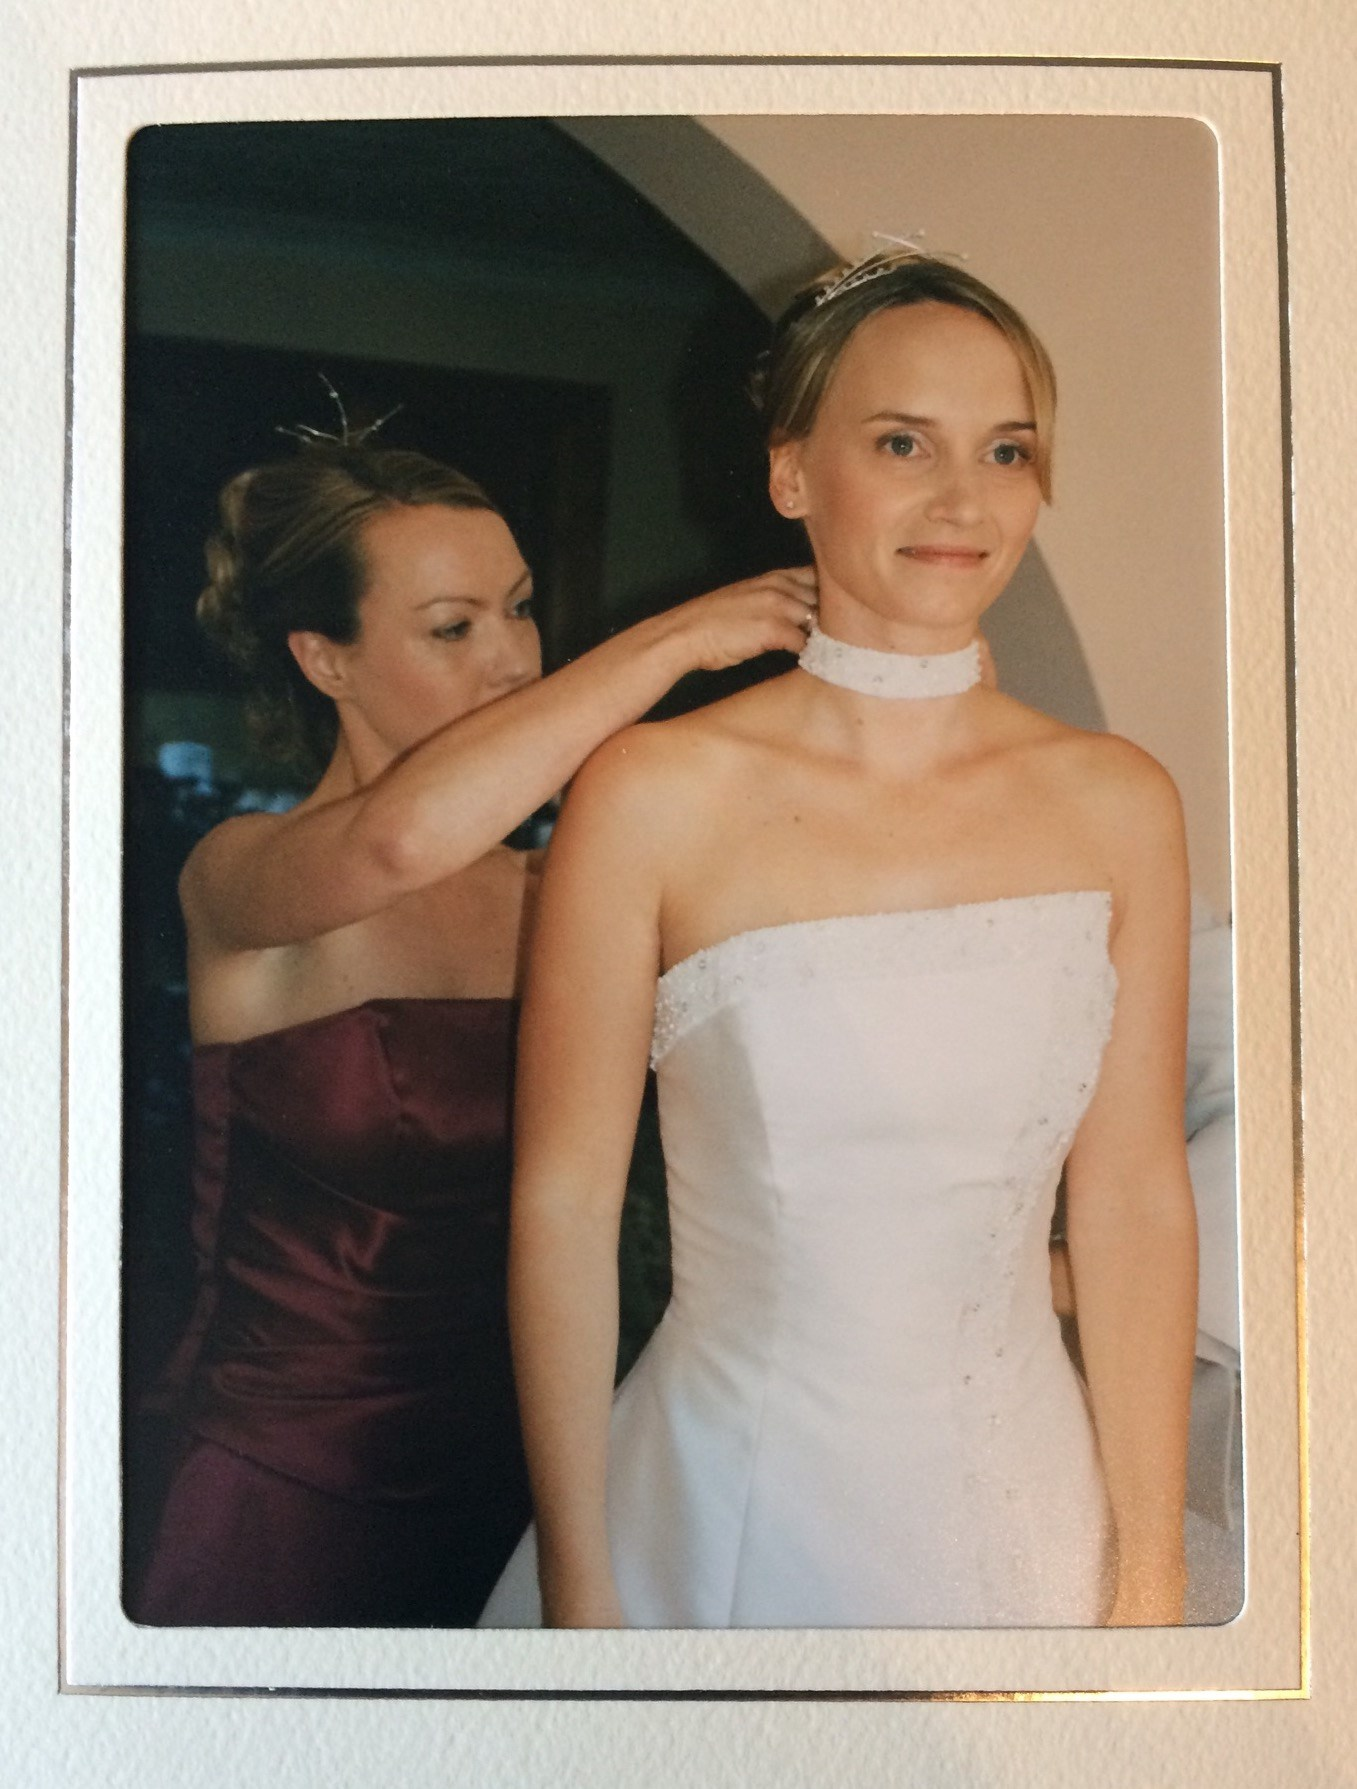 Helping the bride!